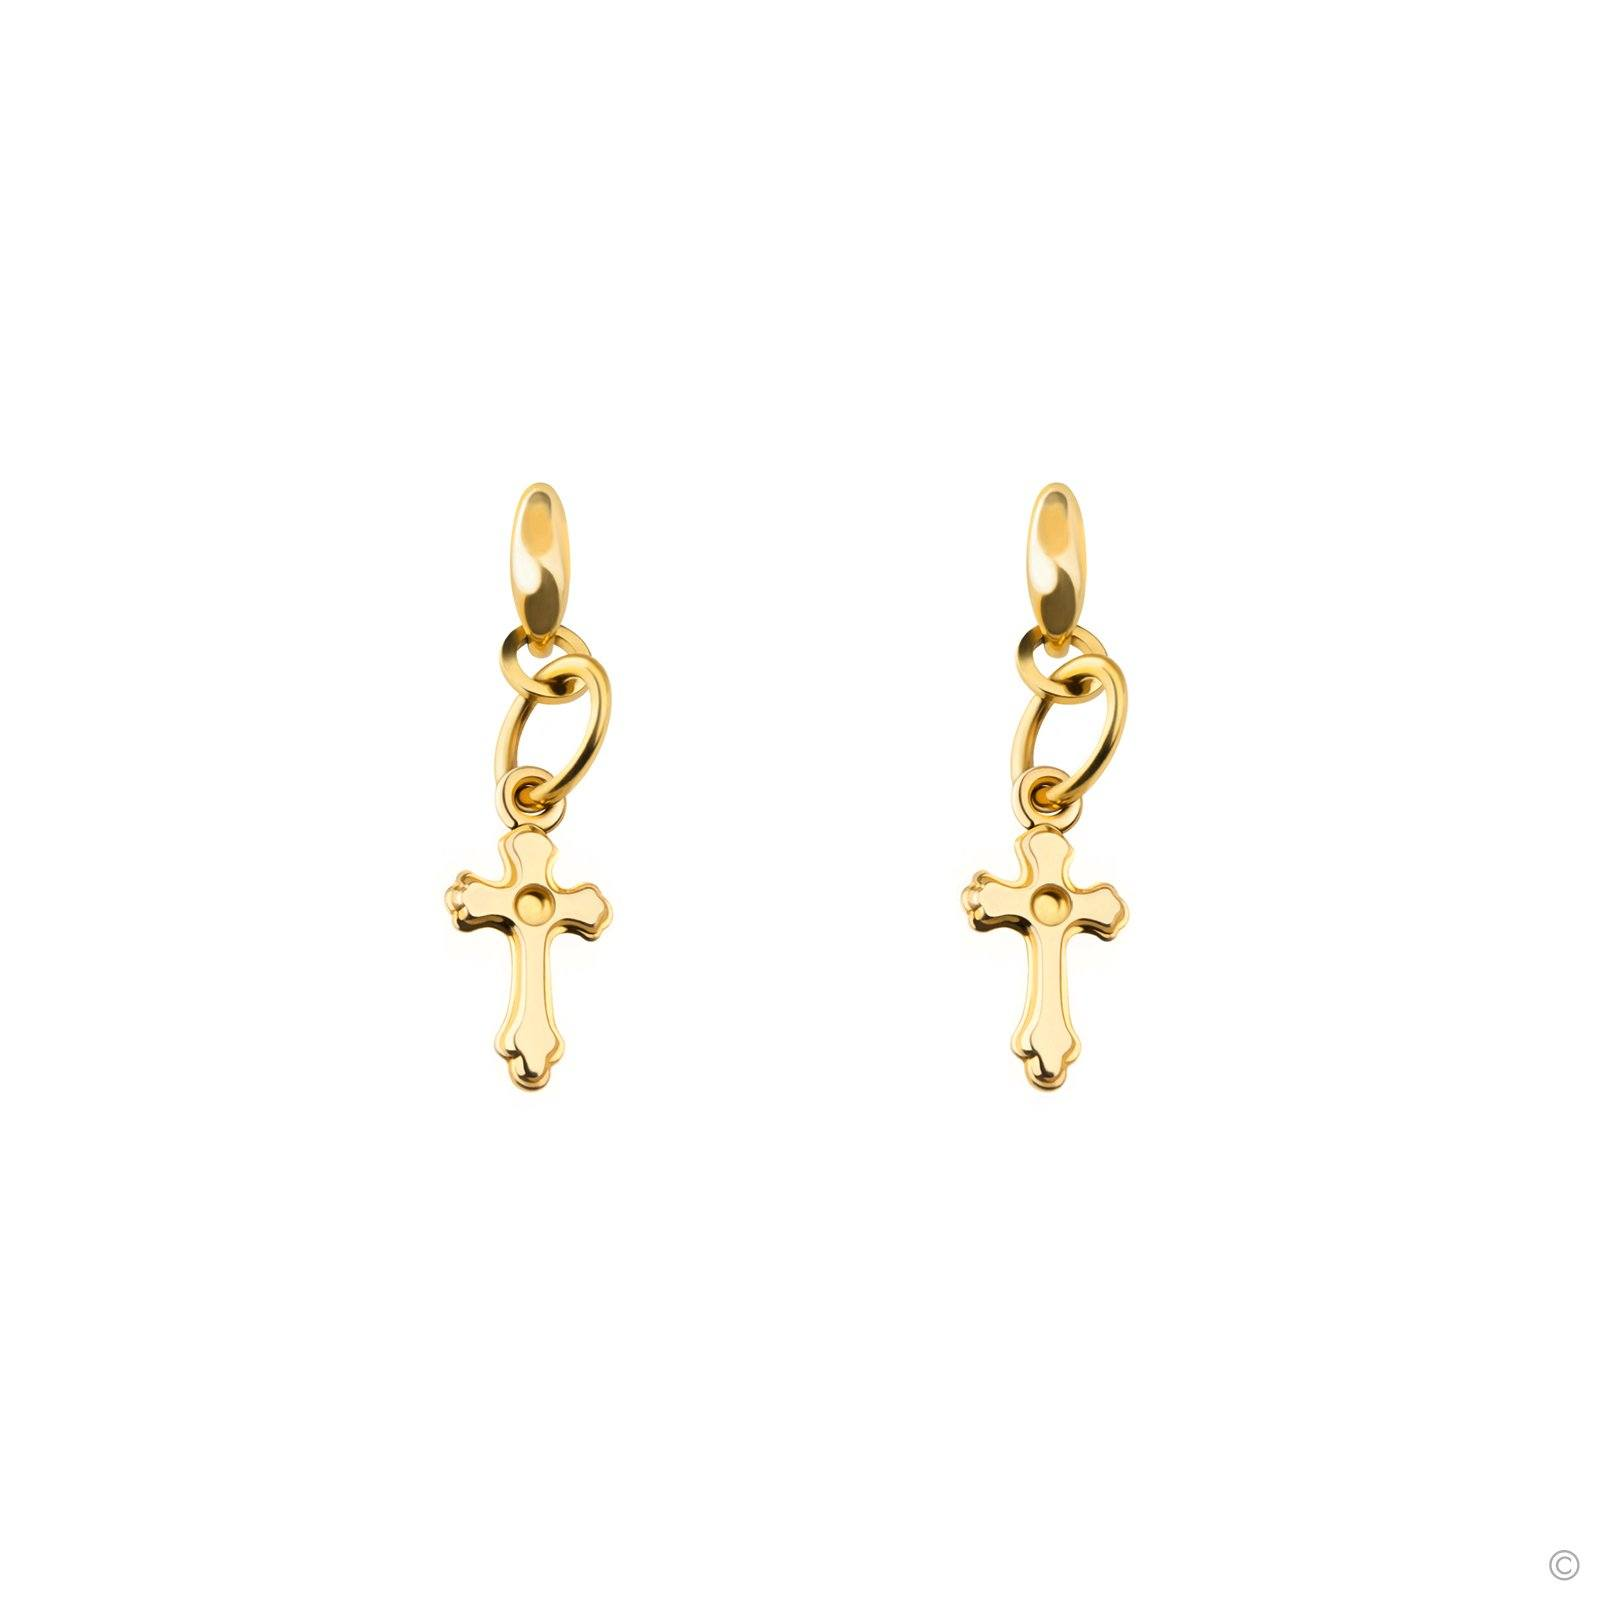 Crucial Cross Earrings